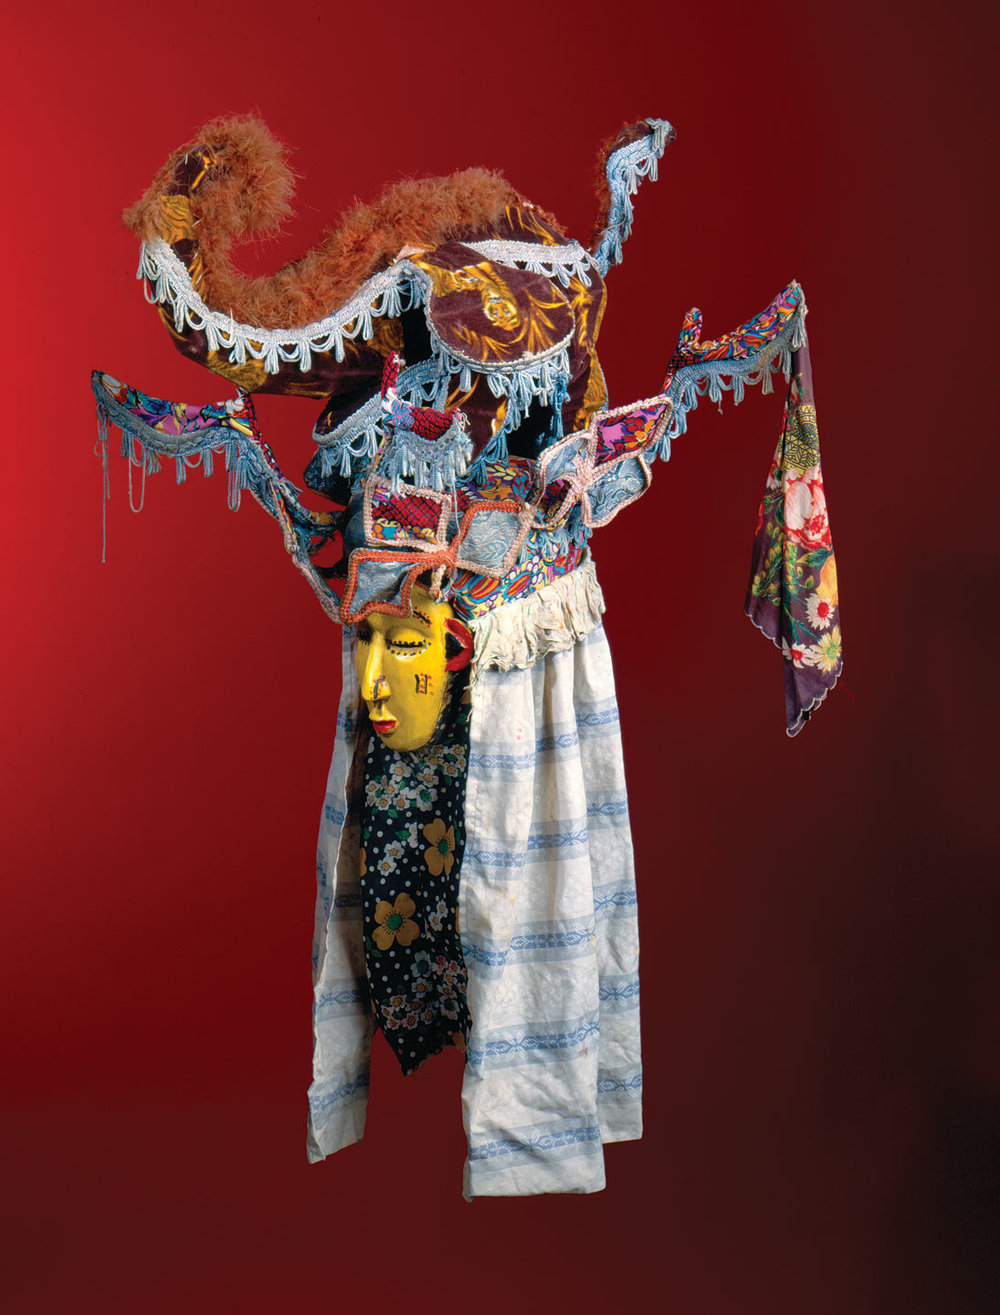 MASQUERADE HEADDRESS of wood, pigment, wire, fabric, fringe, braid, polyurethane foam, metal, 58.4 x 55.9 x 68.6 centimeters, Freetown, Sierra Leone, circa 1970s.  Images courtesy of the Fowler Museum at UCLA.